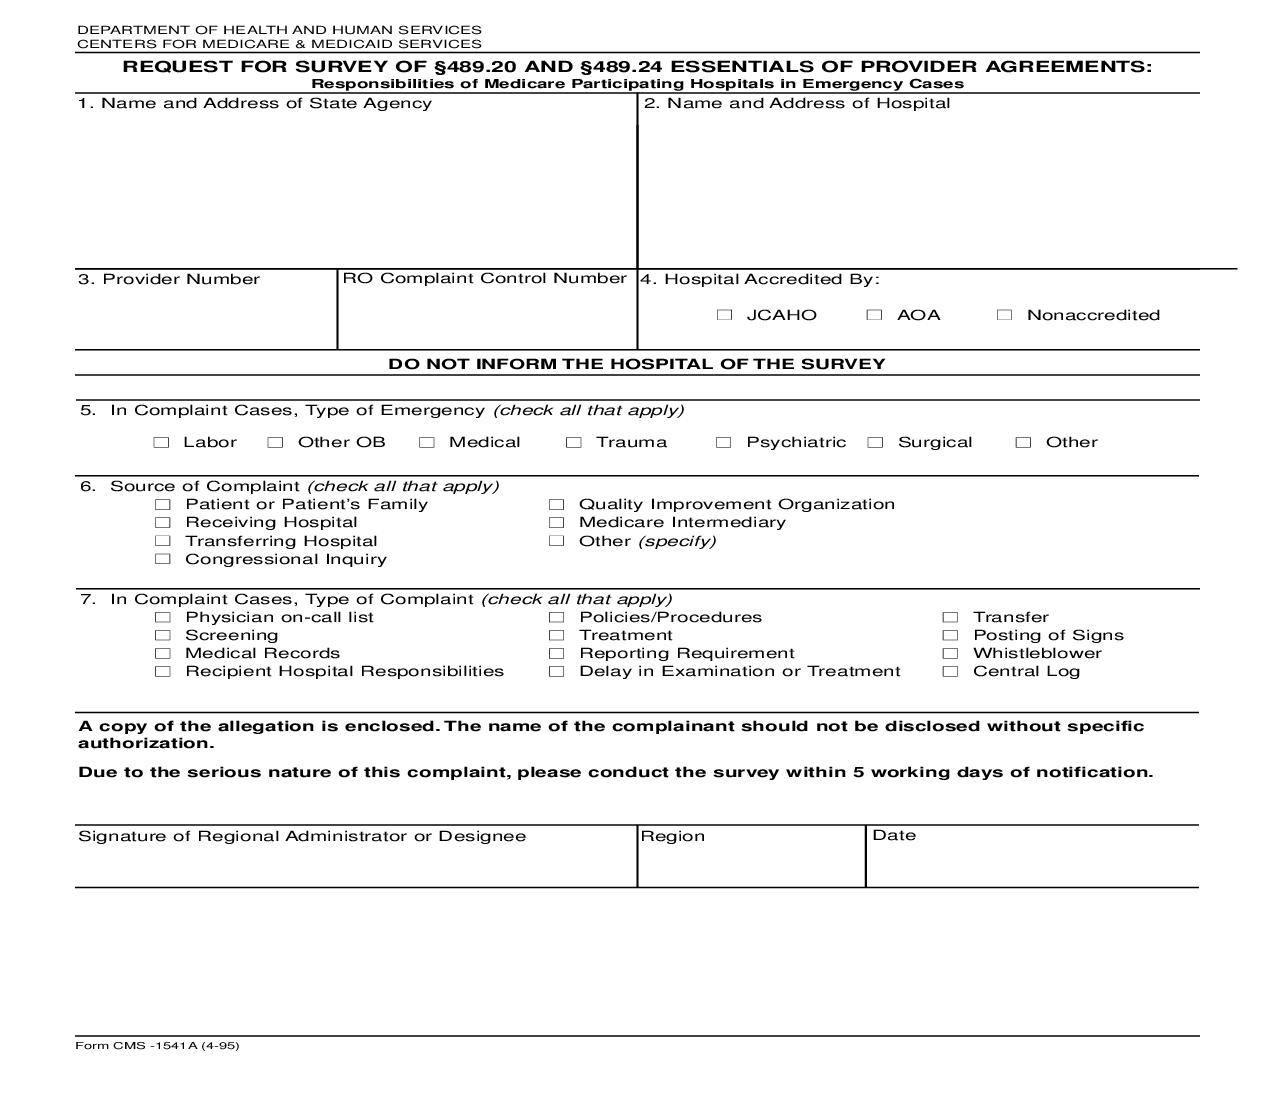 Request For Survey Of 489.20 And 489.24 Essentials Of Provider Agreements {CMS-1541A} | Pdf Fpdf Doc Docx | Official Federal Forms